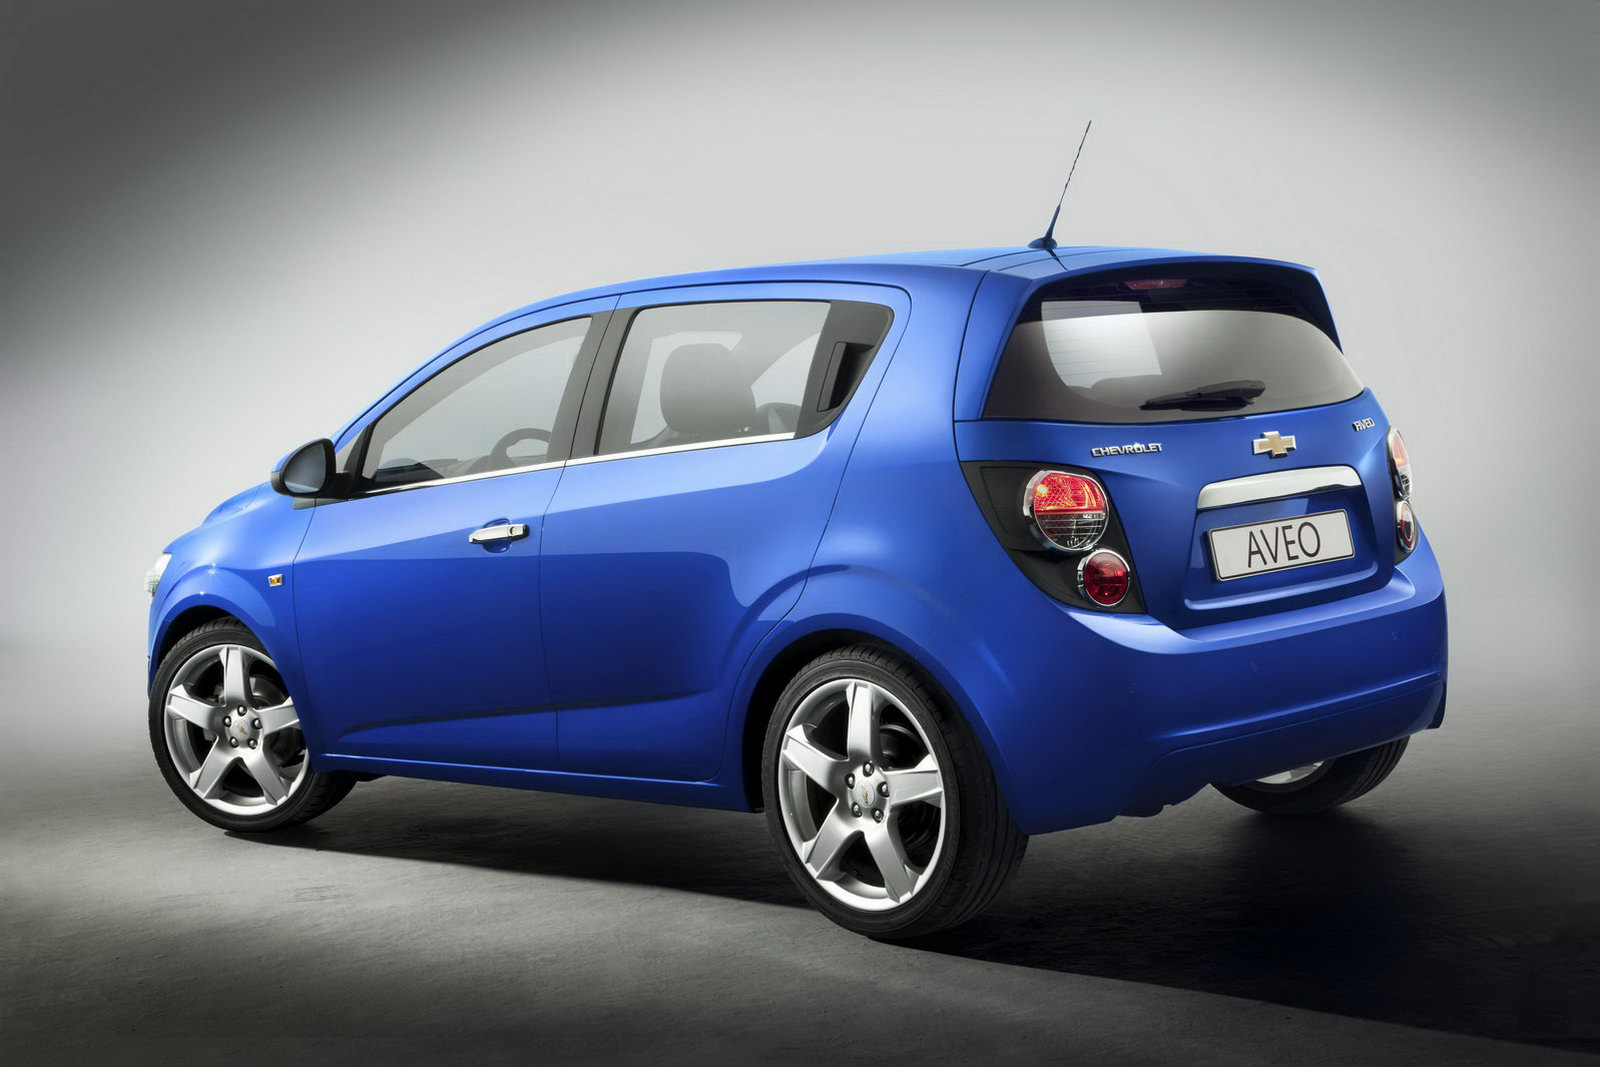 Chevrolet Aveo - not a dancing transformer, but a realistic car  #5